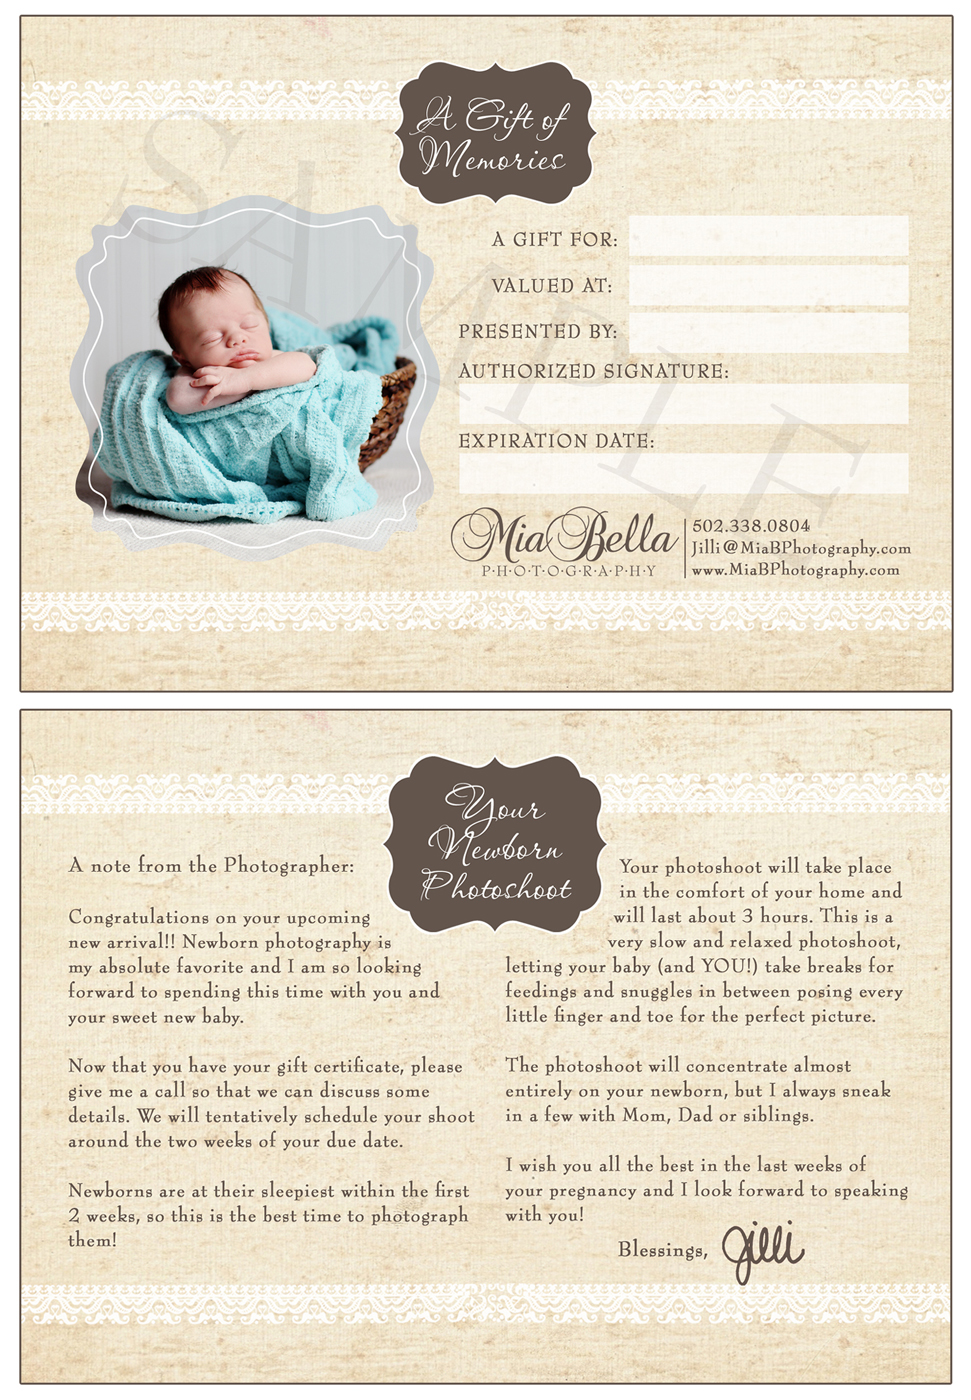 Mia bella photography newborn photoshoot gift for Photoshoot gift certificate template